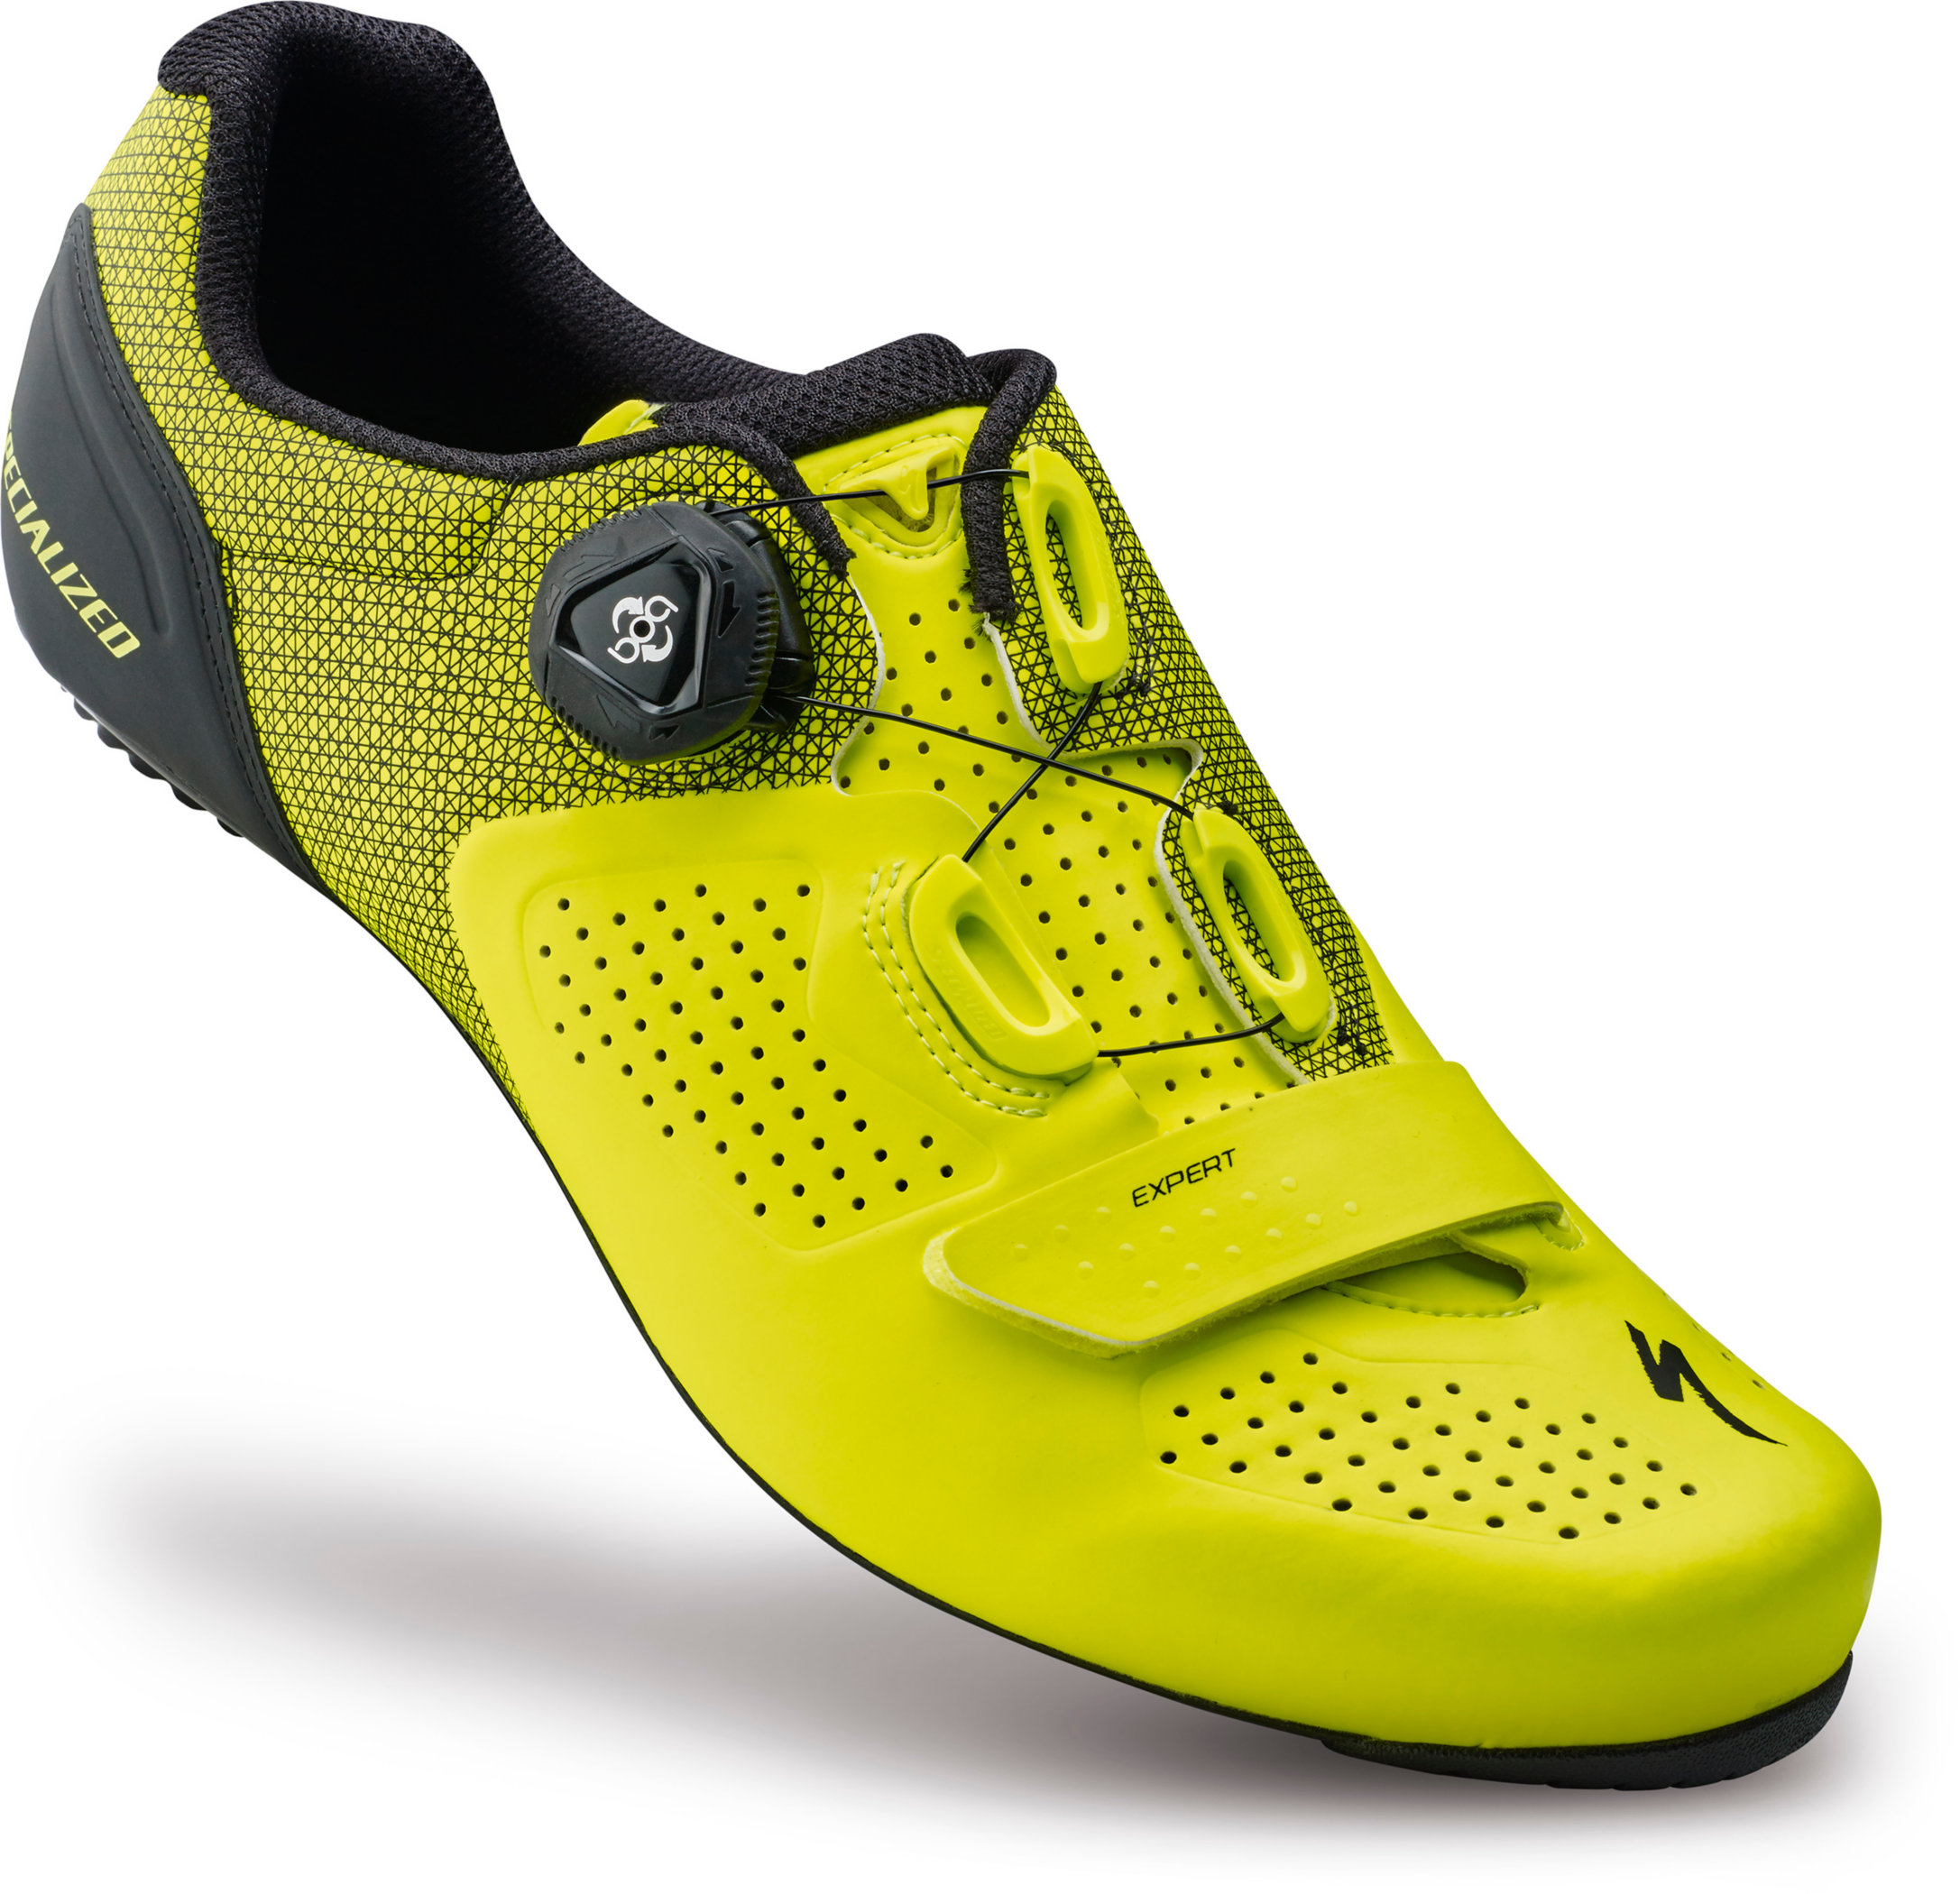 SPECIALIZED EXPERT RD SHOE NEON YEL 41/8 - Bikedreams & Dustbikes